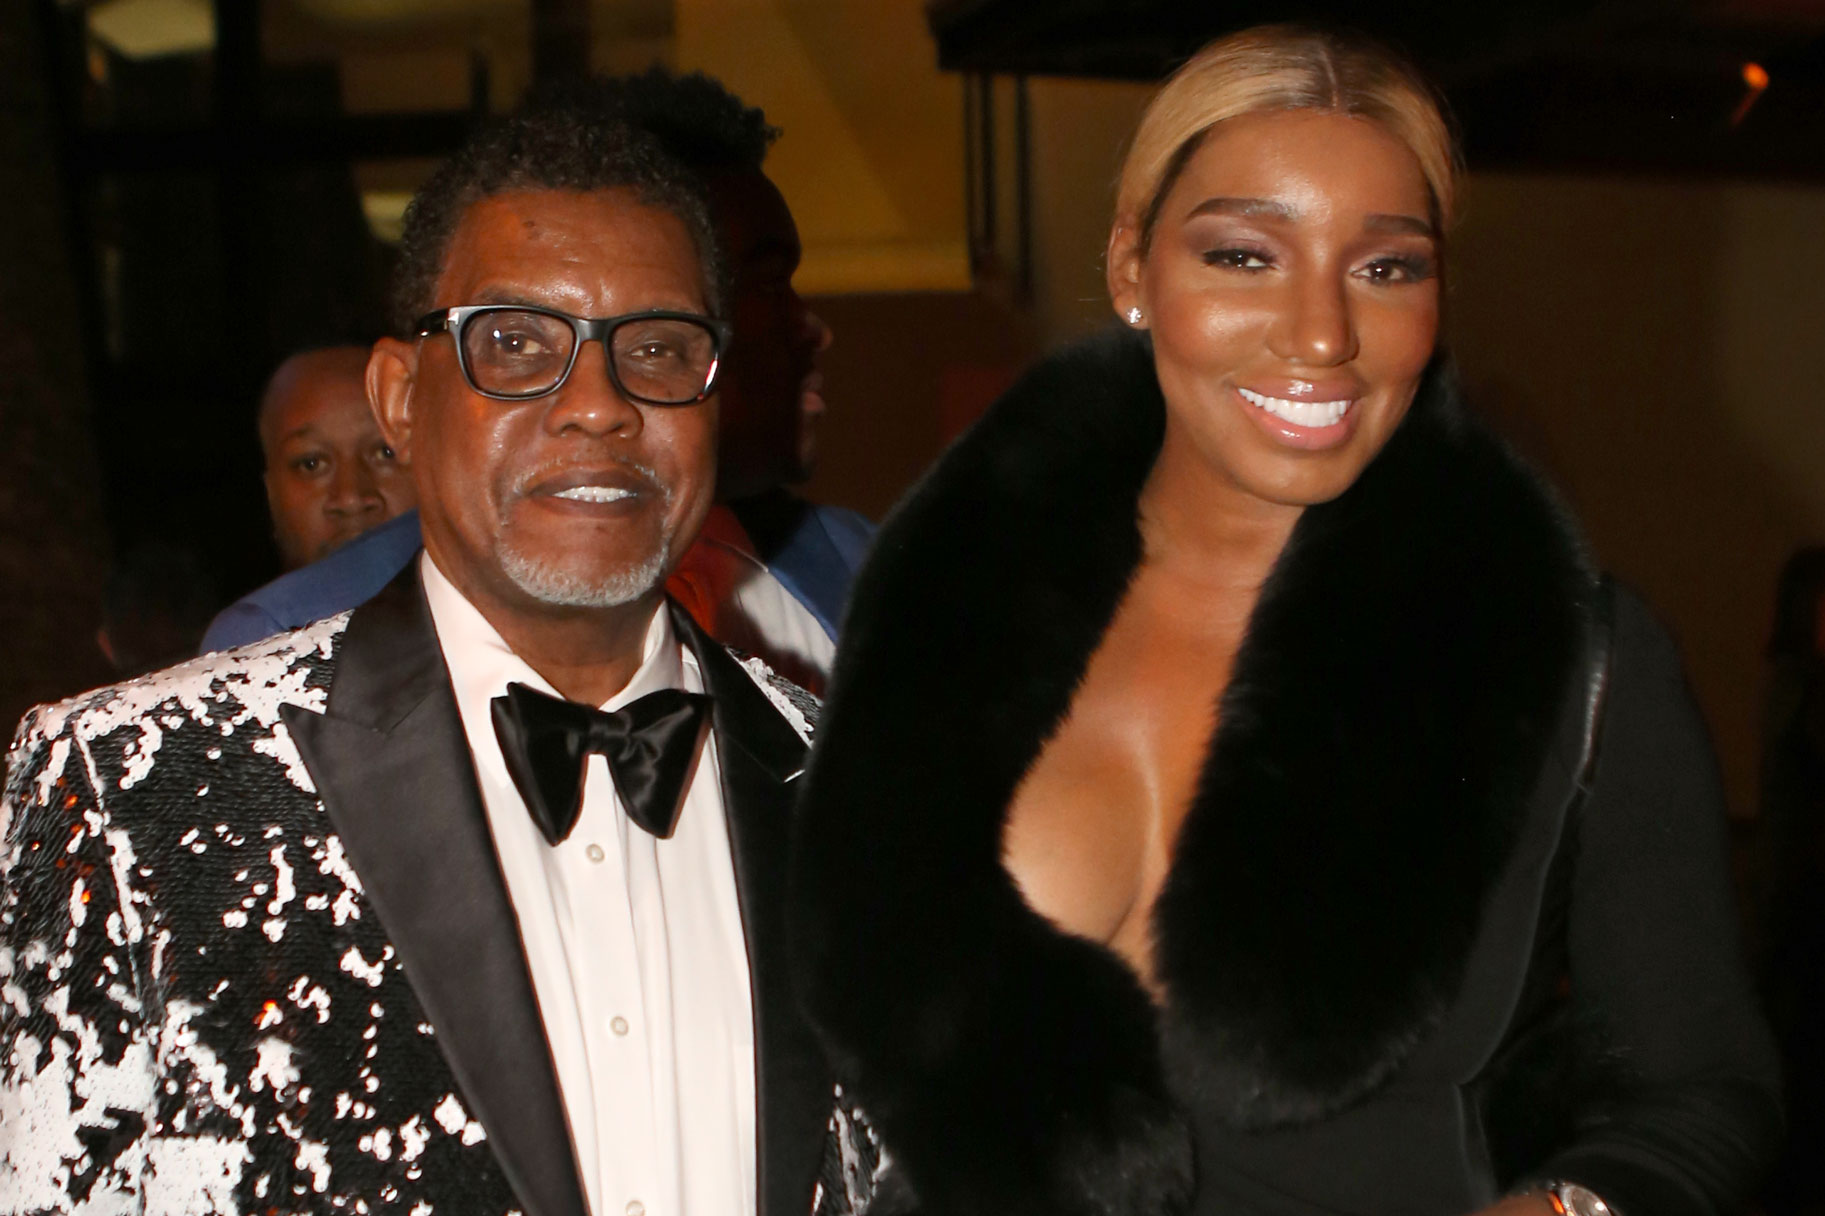 nene-leakes-officially-opens-her-new-store-see-the-exciting-video-gregg-leakes-supports-his-wife